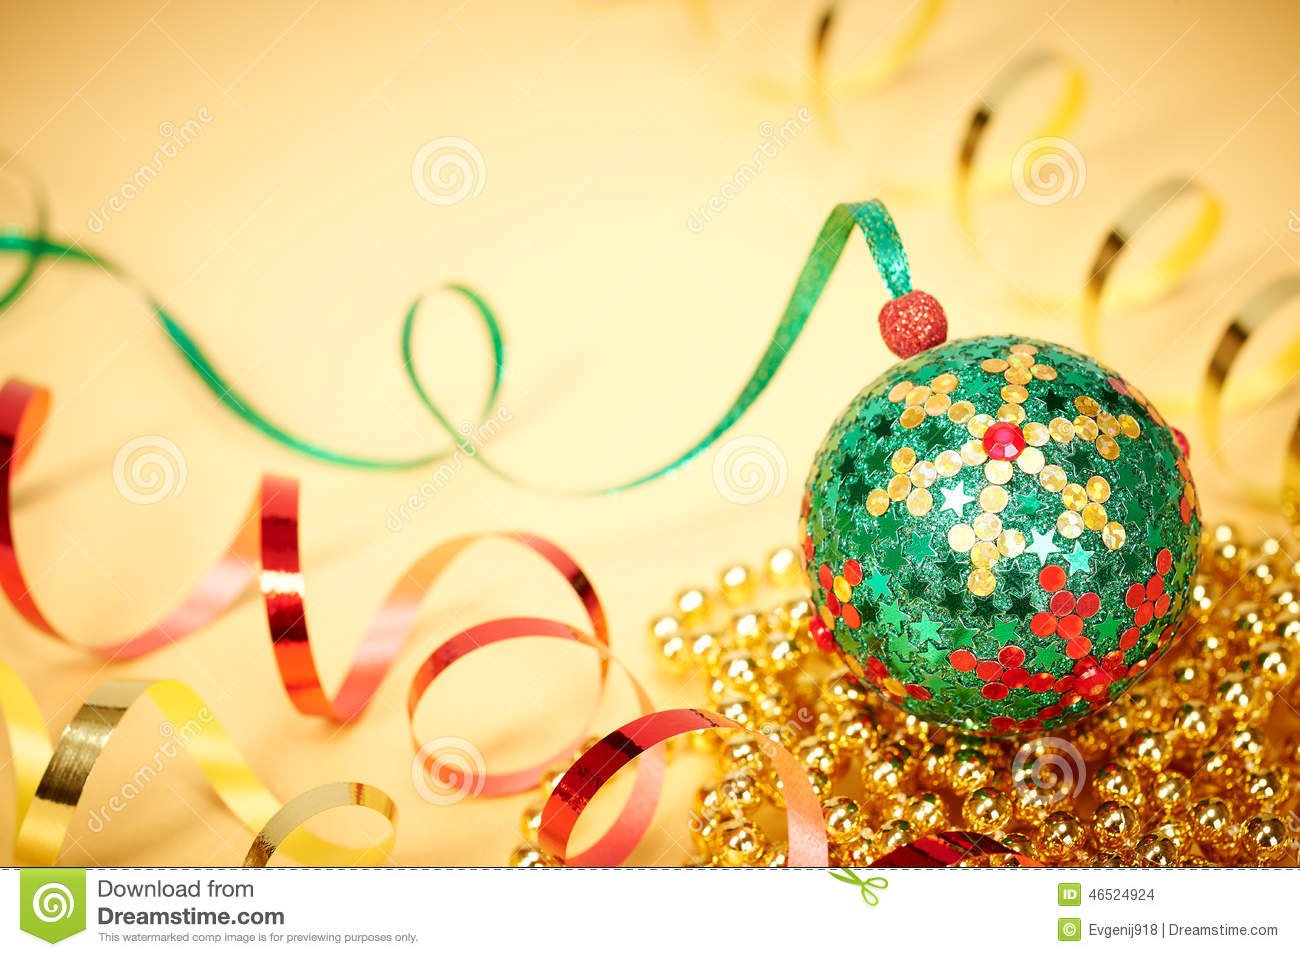 colorful new year decoration - photo #16